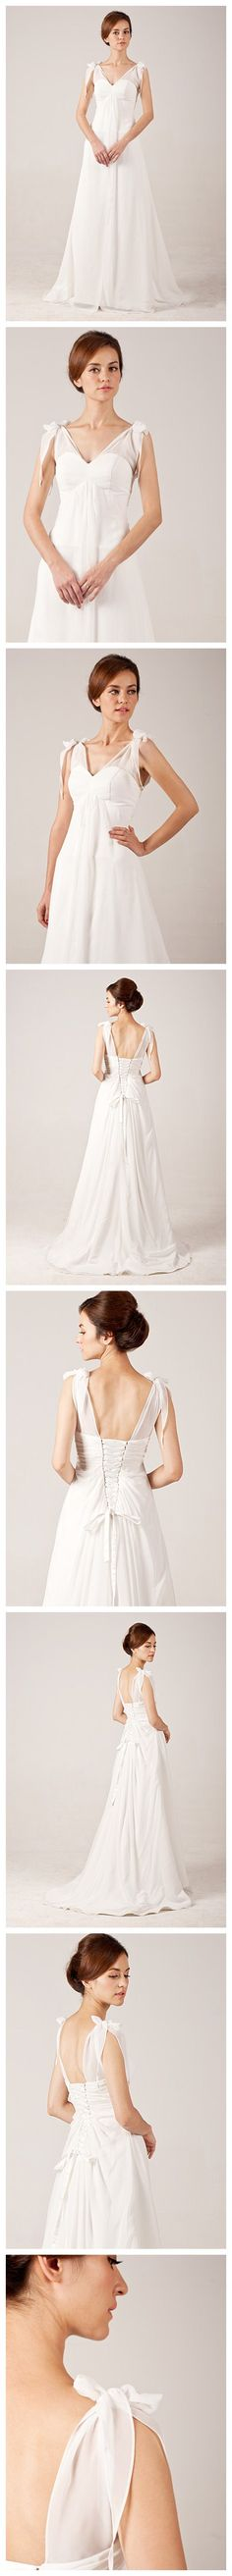 Graceful Simple V-neck Chiffon Wedding Dress with Bows On Shoulder